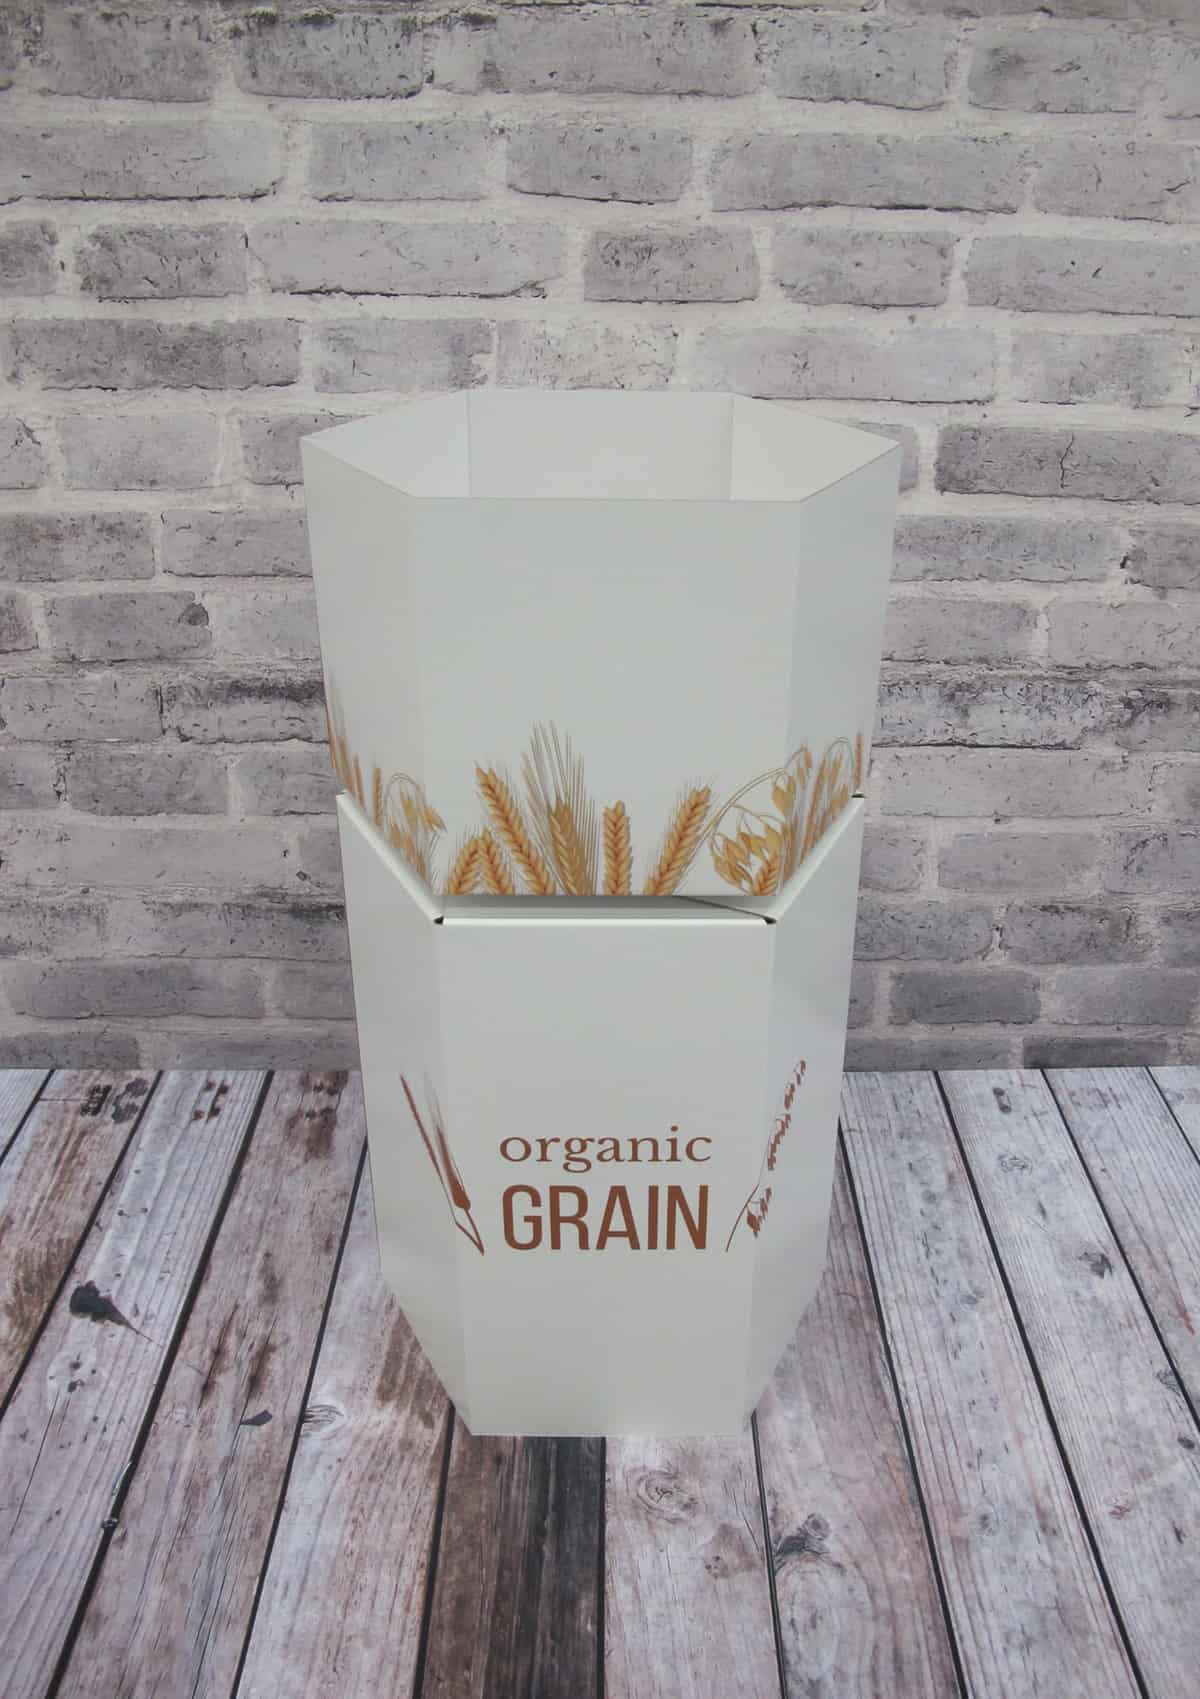 Display - Sjokkselgere/dumpere - Organic Grain